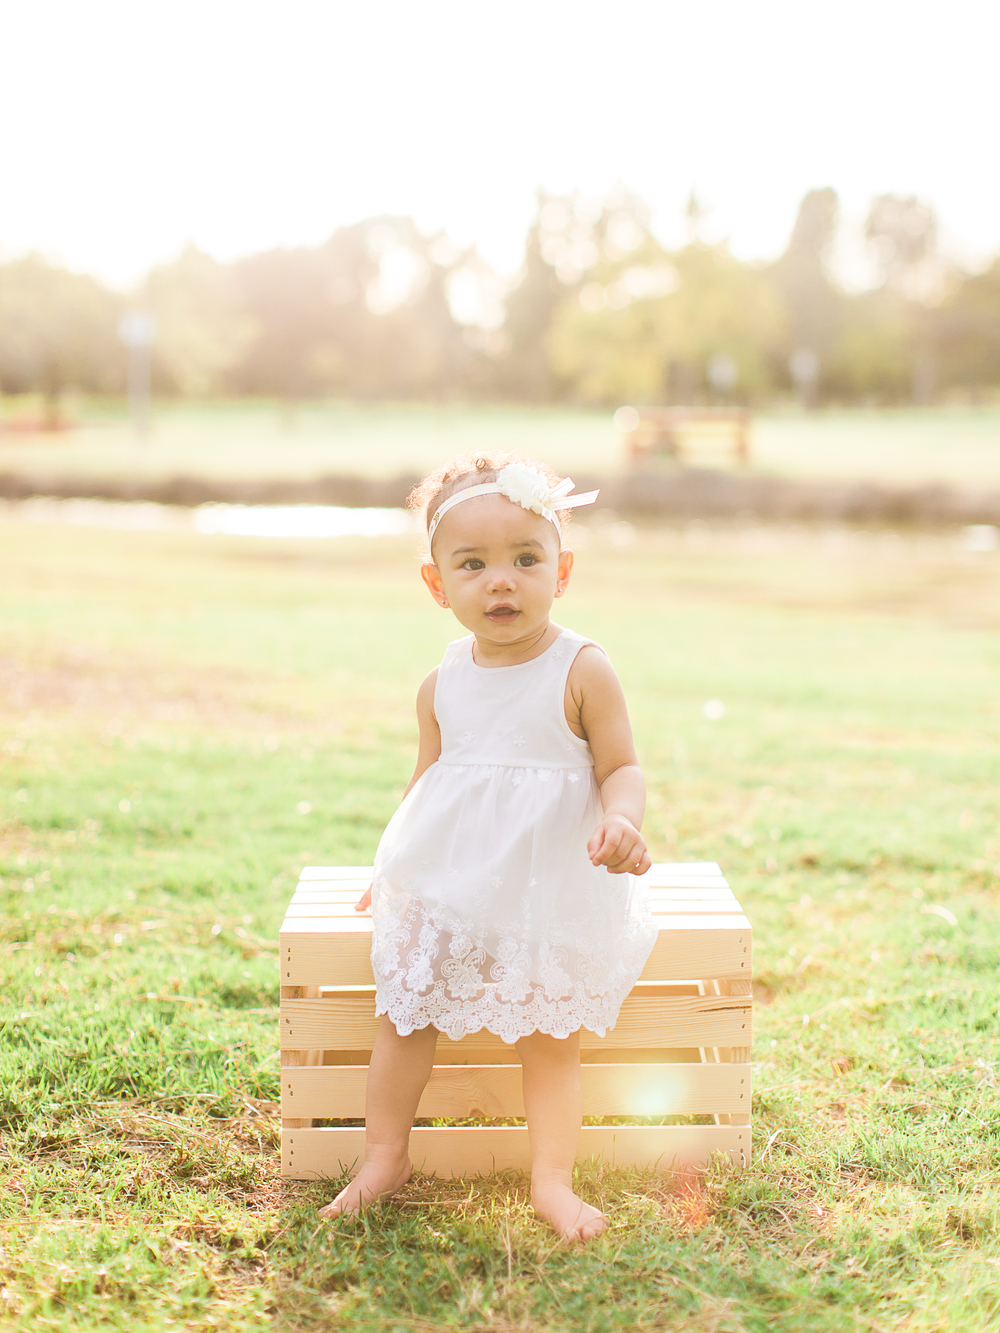 AleiahRei_1stBirthday_Brandon J Ferlin Photography-49.jpg